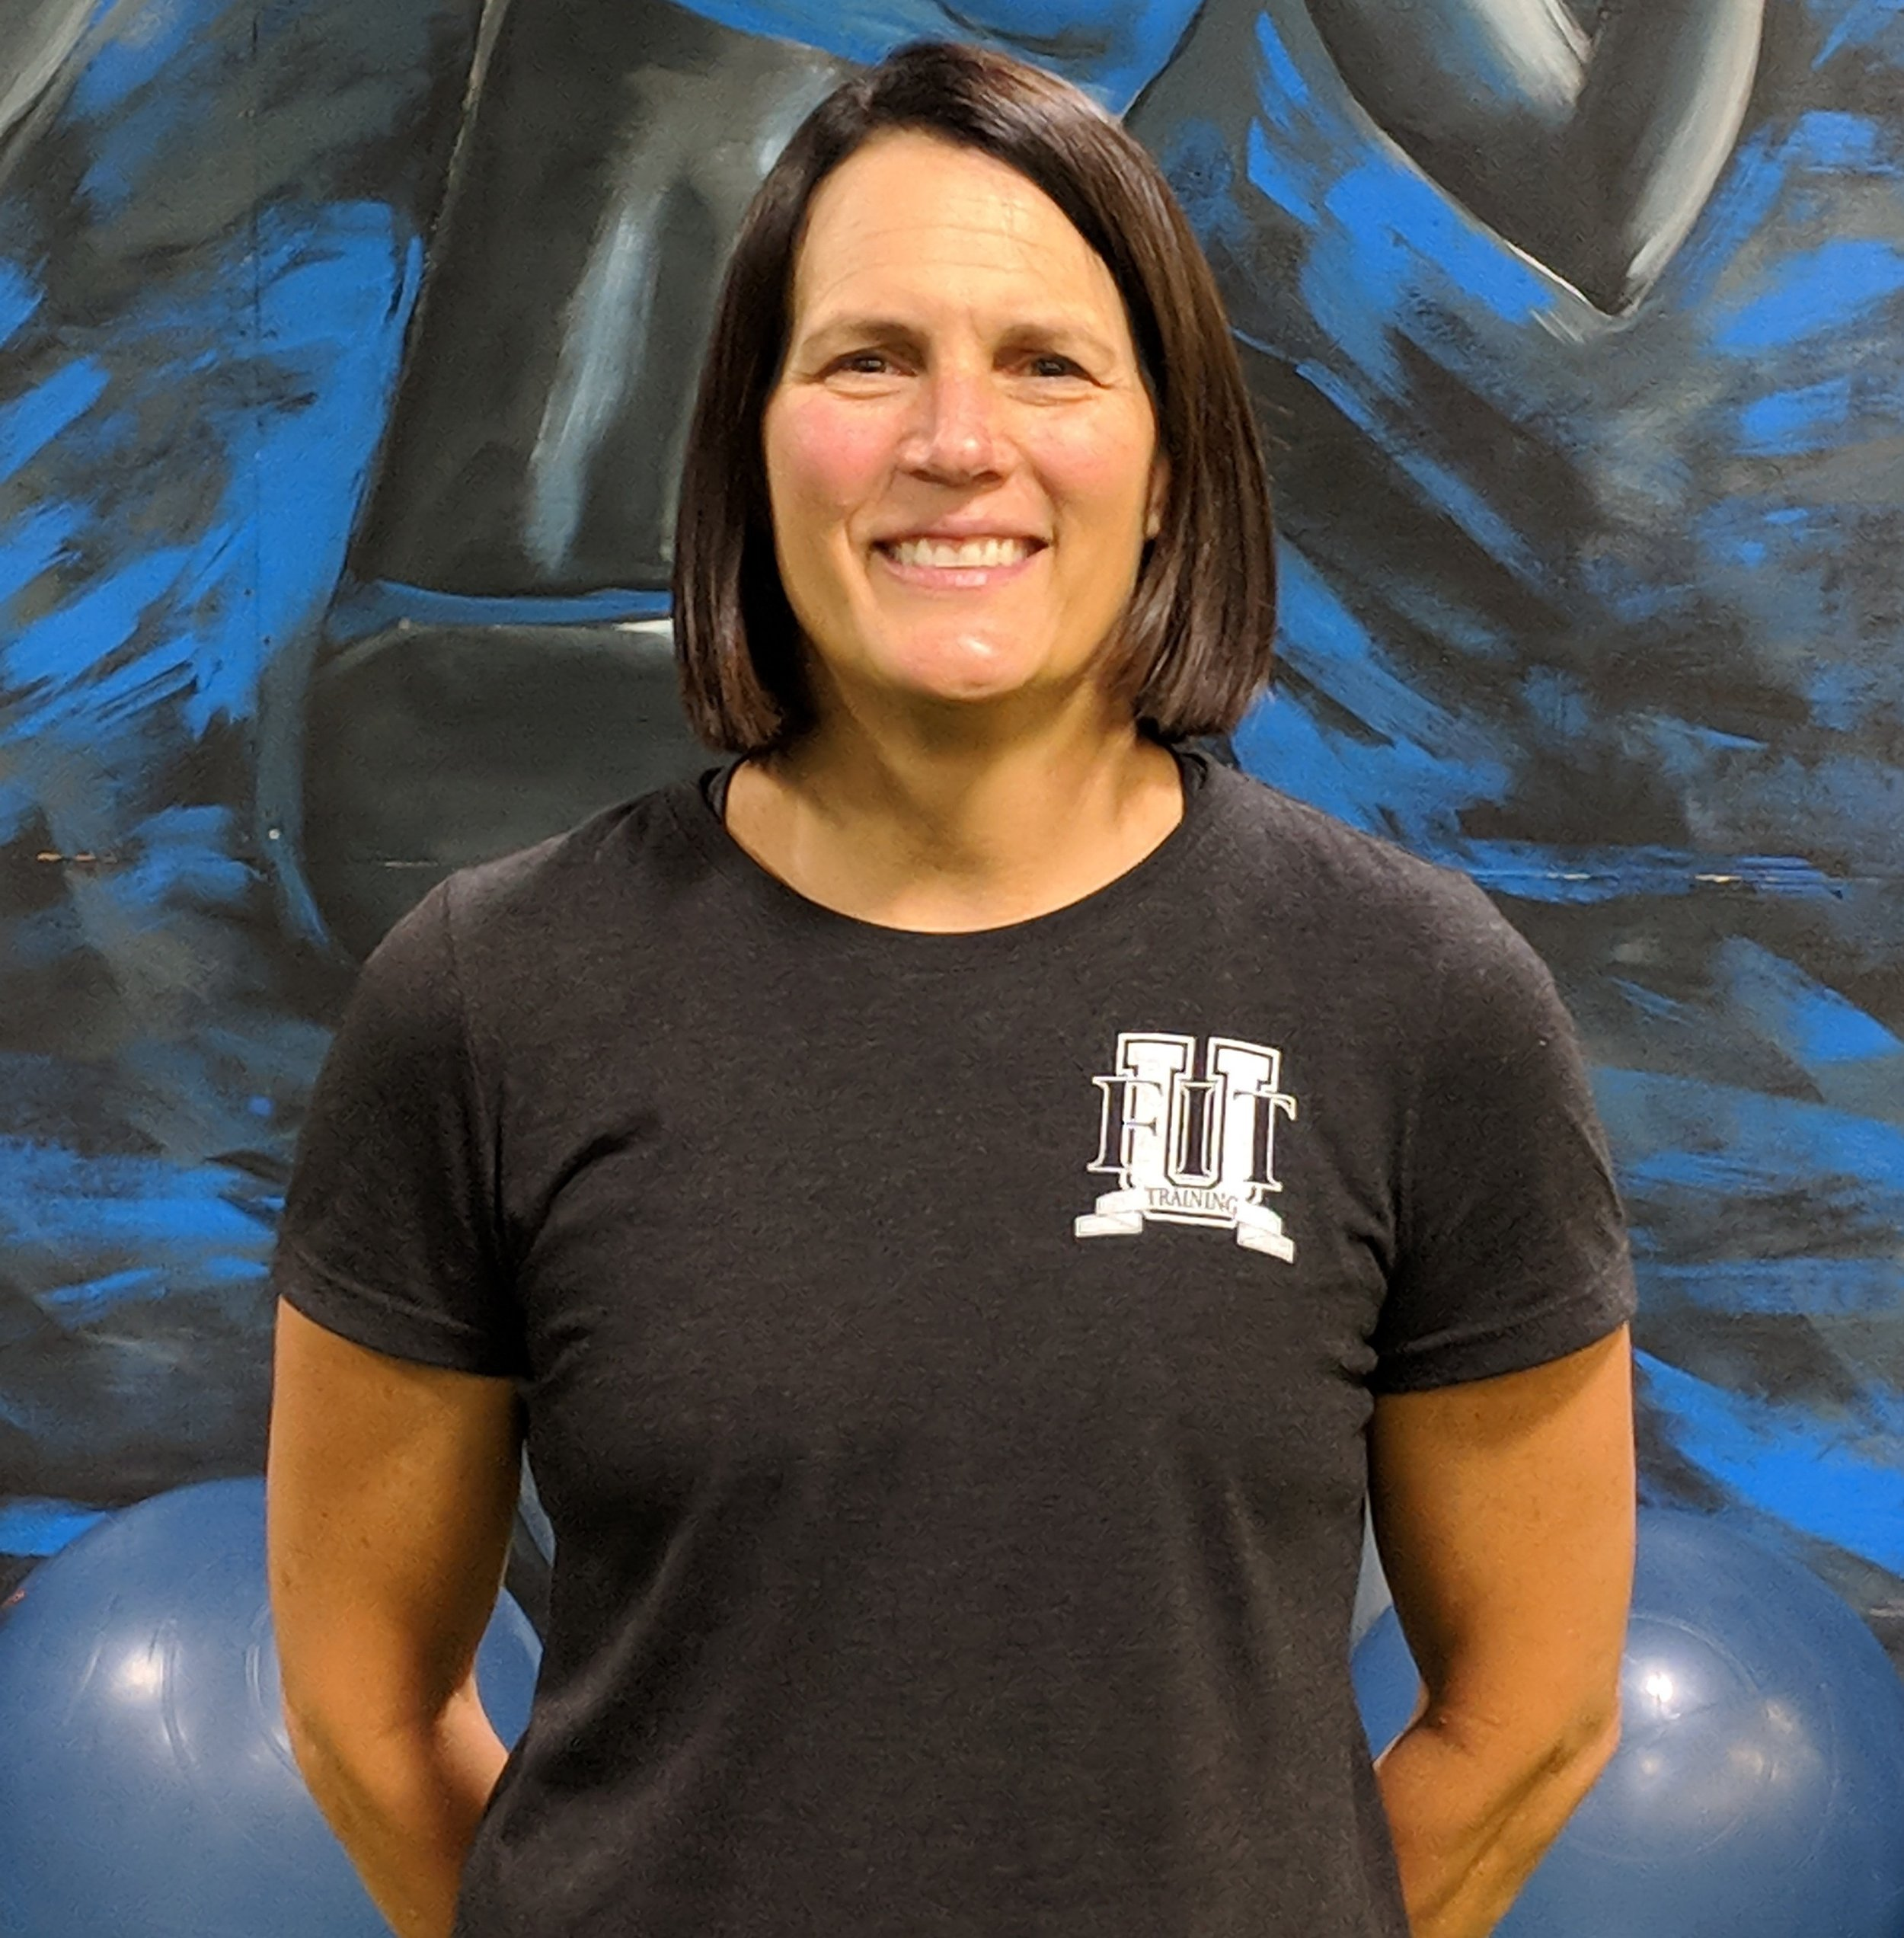 Stacy Buster - I am the founder/owner of FIT U Training 360. I grew up in San Diego moving to West Texas during high school. I decided to attend Texas Tech with the intent to become a Physical Therapist. Having always loved sports and fitness-based activities, I decided to change my major two years into college. In 1987, I graduated with a BS in Exercise Science and a minor in biology. My desire to work in cardiac rehab led me to pursue my nursing license.I became an RN in 1992 and worked in cardiac rehab for years before moving to Southern Maryland. This career choice allowed me to use both my college degree and my RN. When we first moved here, I worked at the local hospital as well as home health as an RN. In 2004, I started working at a local gym as a personal trainer, and eventually became the director of training. Realizing the need for something other than a basic gym here in SoMD, I had the vision for FIT U. I set out to develop a fitness and performance-based facility, which has since turned into more than I could have ever imagined back in 2011.My husband Alan and I moved to St Mary's in January 2000 with our 3 daughters, Emily, Erin and Morgan(twins). Our girls all played travel soccer. The twins are in college and the oldest has graduated and works at FIT U. I love watching sports, especially soccer and football. I am also a huge animal lover, with a huge soft spot for dogs. We have three of our own rescued pups!! I enjoy vacations at the lake, boating, hiking, and working out with all the different